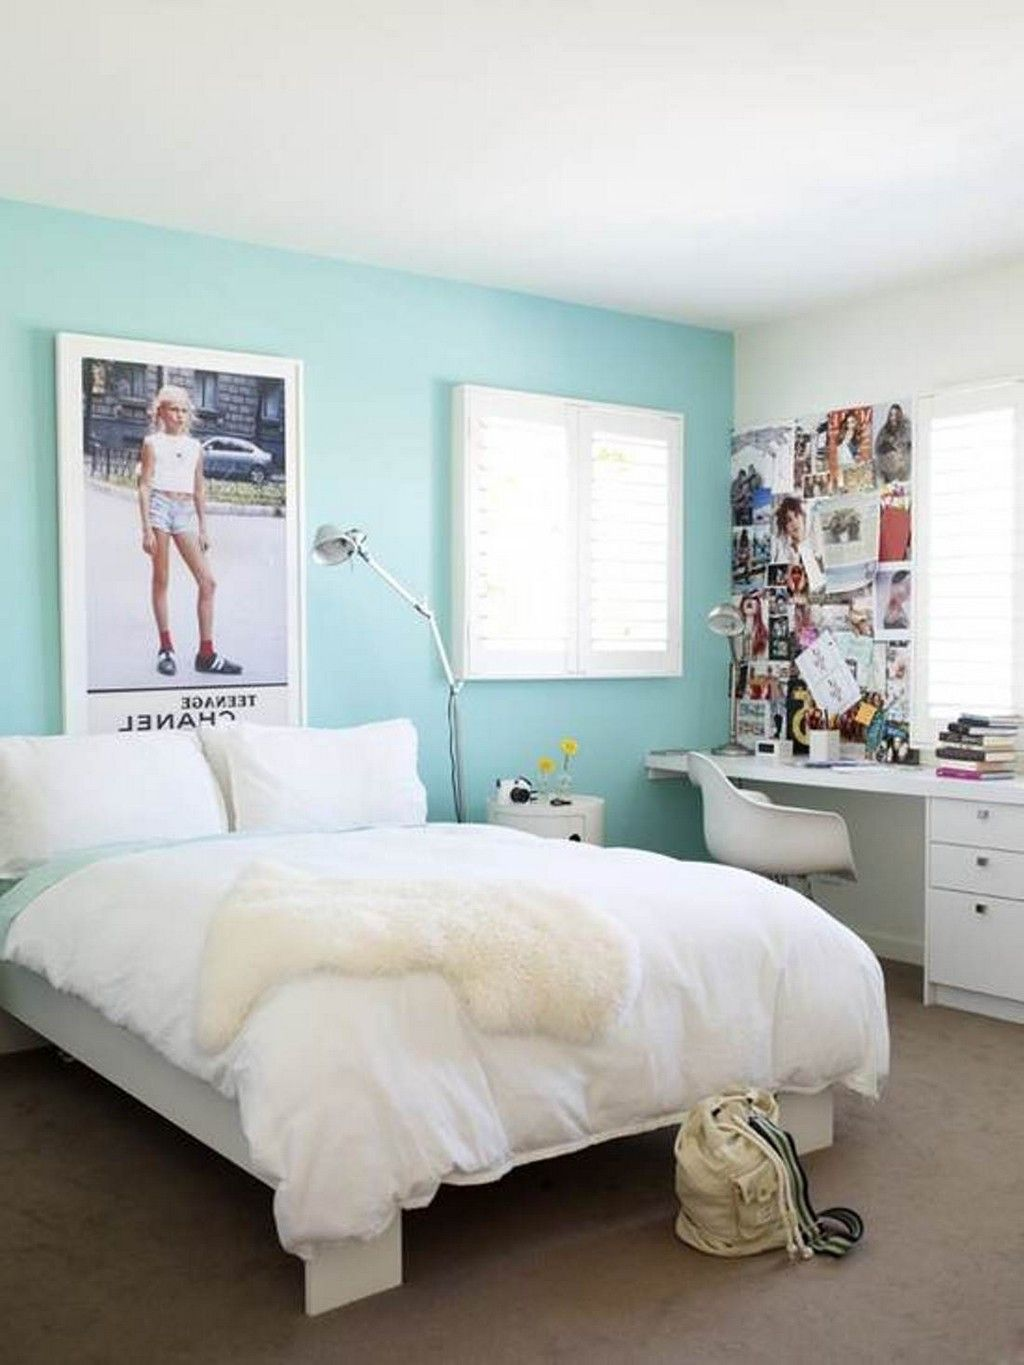 Blue bedroom design for teenage girls - Bedroom Calming Blue Paint Colors For Small Teen Bedroom Ideas Girls